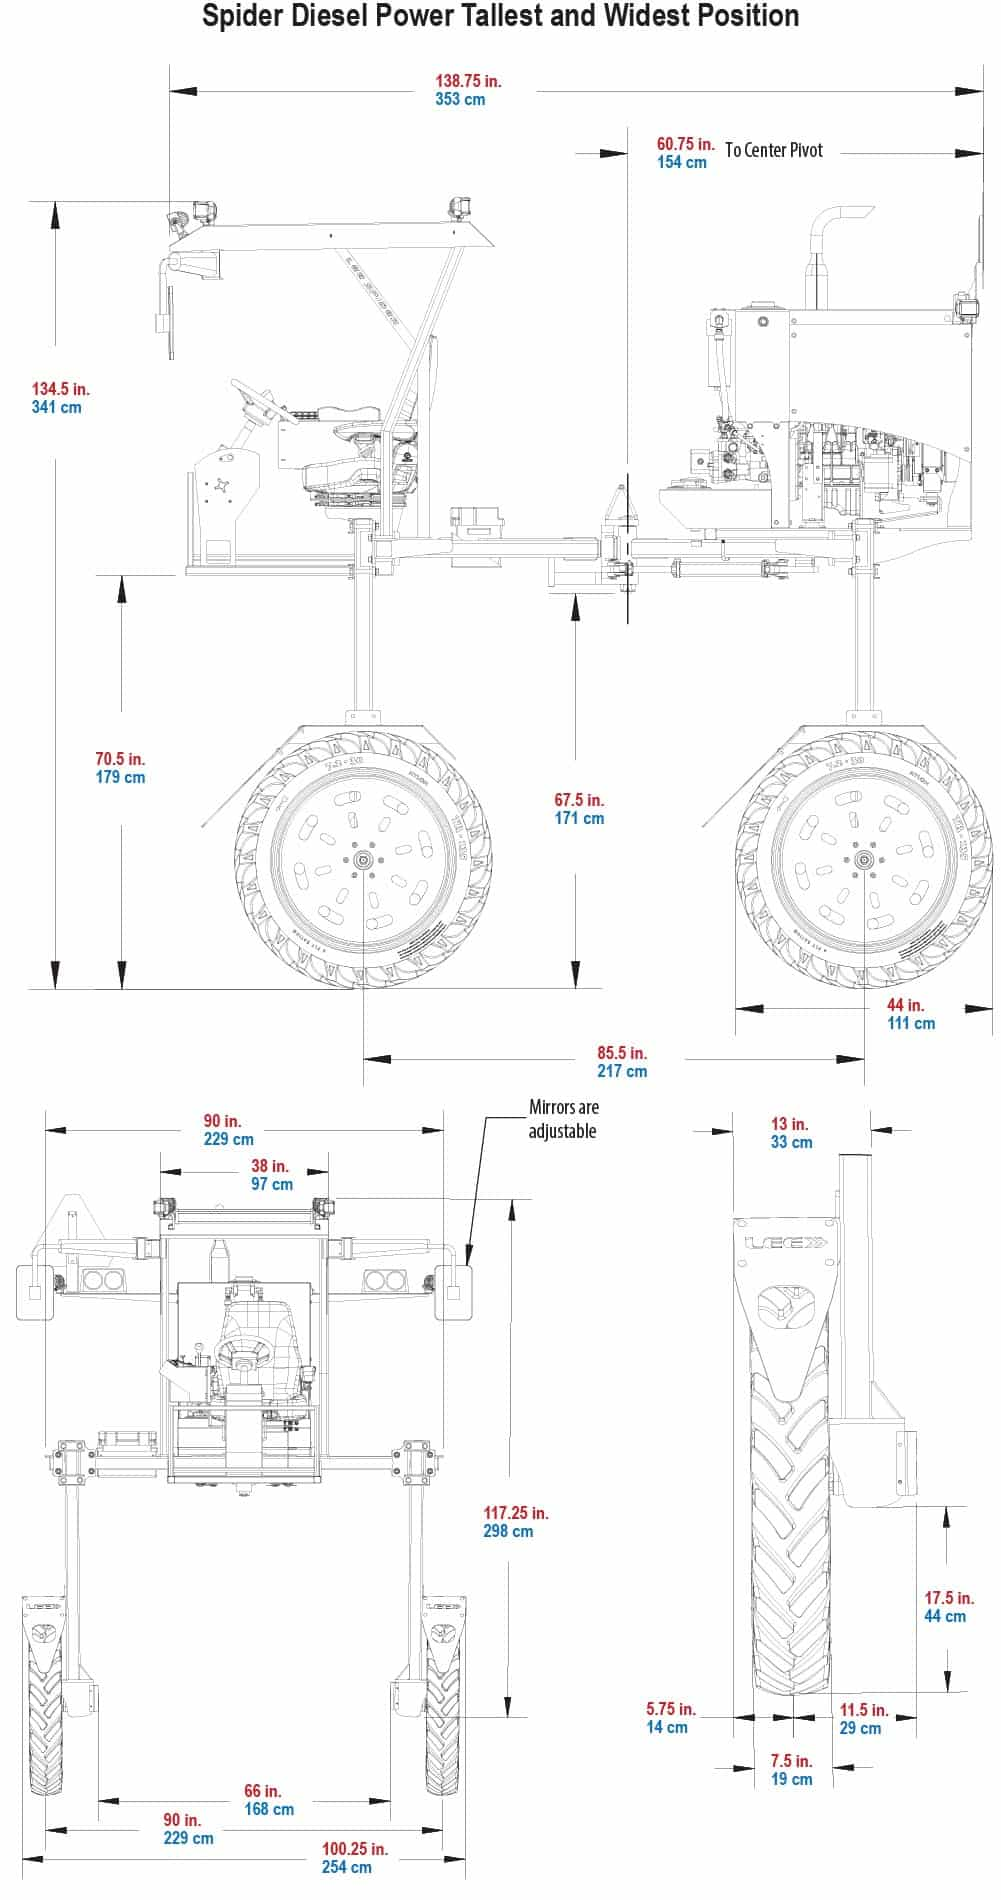 Honda Generator Eu3000is Parts Diagram. Honda. Auto Wiring